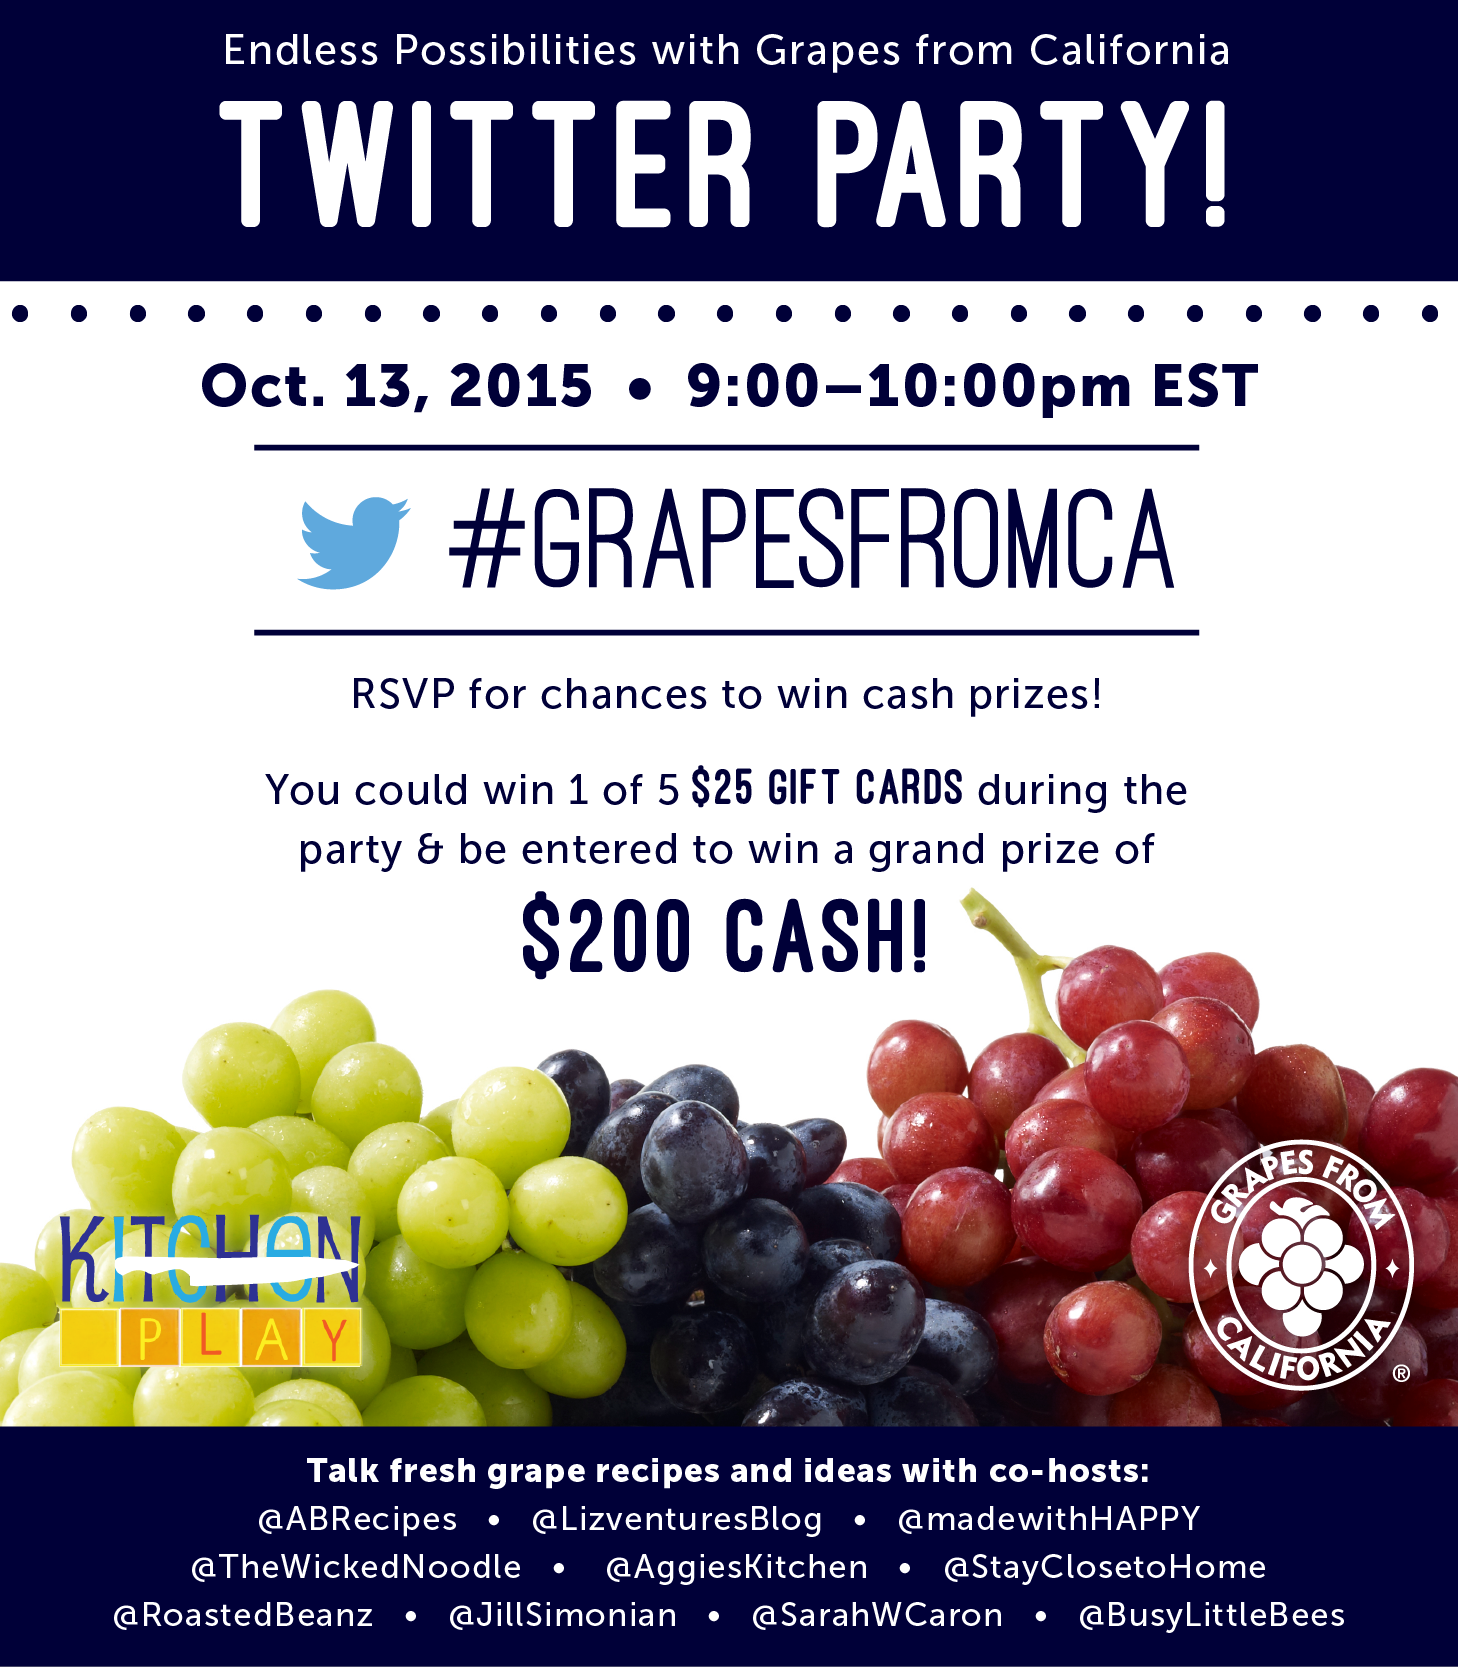 Are you ready to chat up *grape* recipes and fun prizes? #GrapesFromCA [AD]